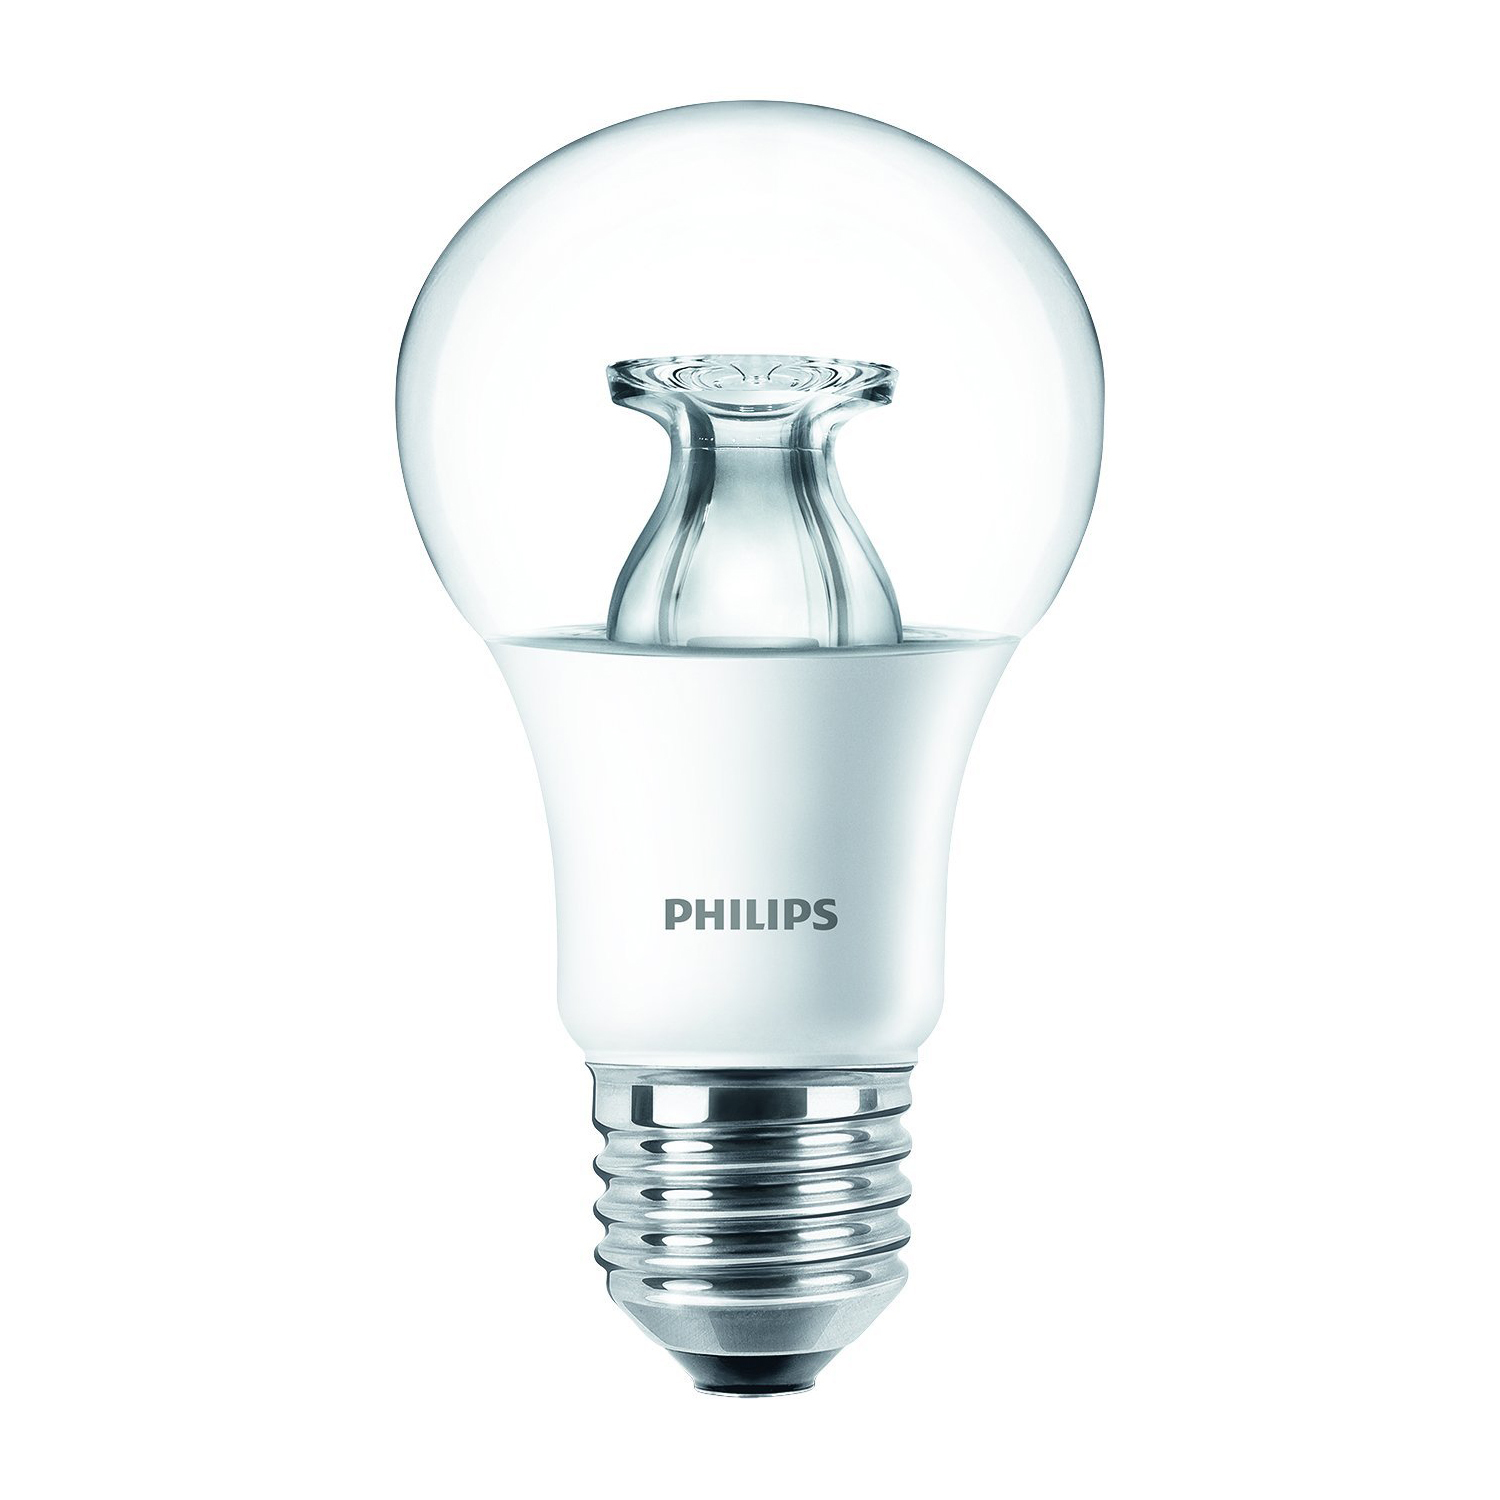 Lampe Dimmbar Philips Led Lampe Warmglow Dimmbar Bei Notebooksbilliger De